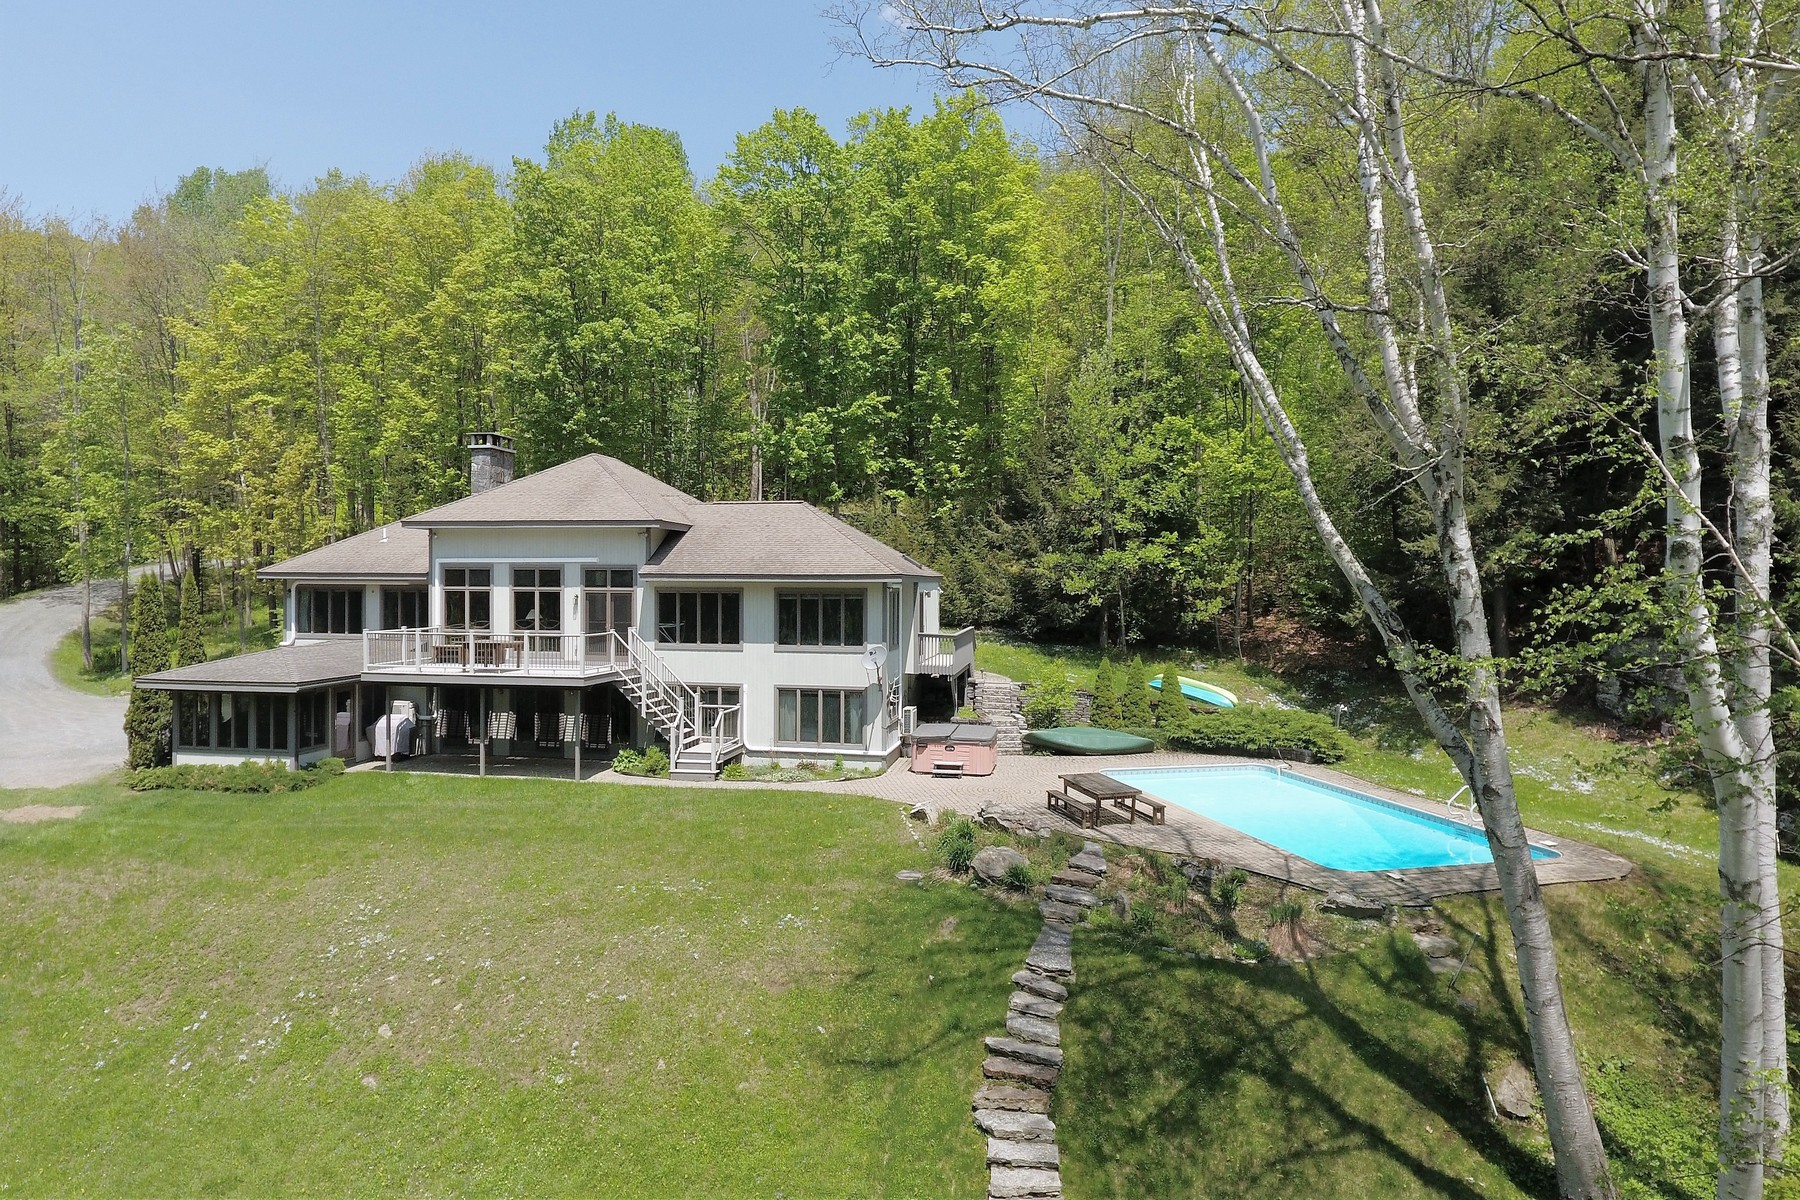 Single Family Homes for Sale at Elegant Lakeside Retreat 42 Scout Dr Wilmington, Vermont 05363 United States